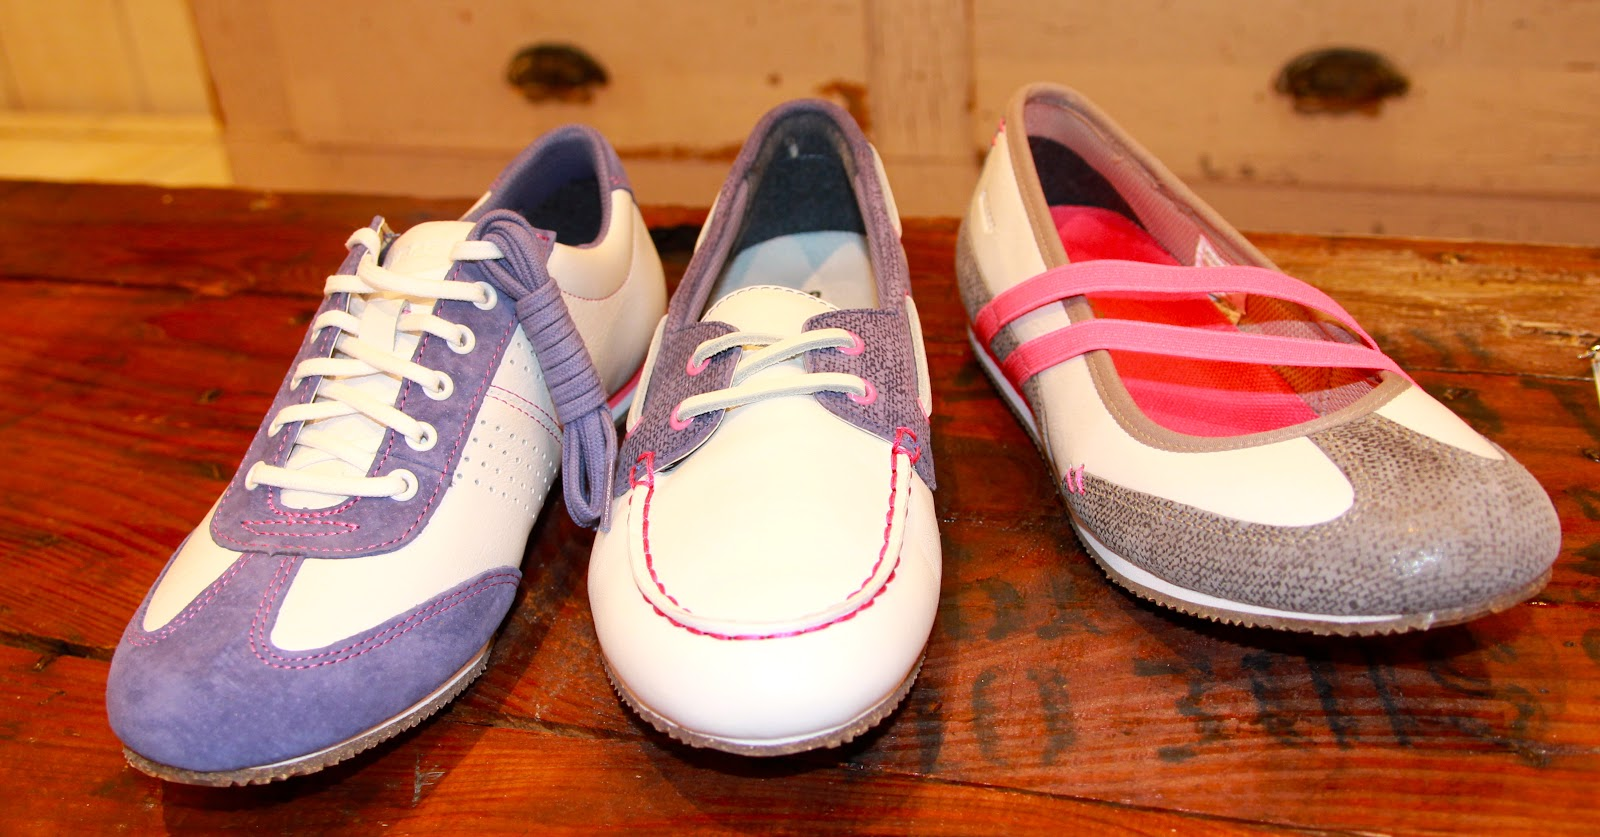 b60abee1d3 women s styles---Ketch lace (left)and the Ketch Skimmer-very cute slip-on  -all with non-marking outsoles